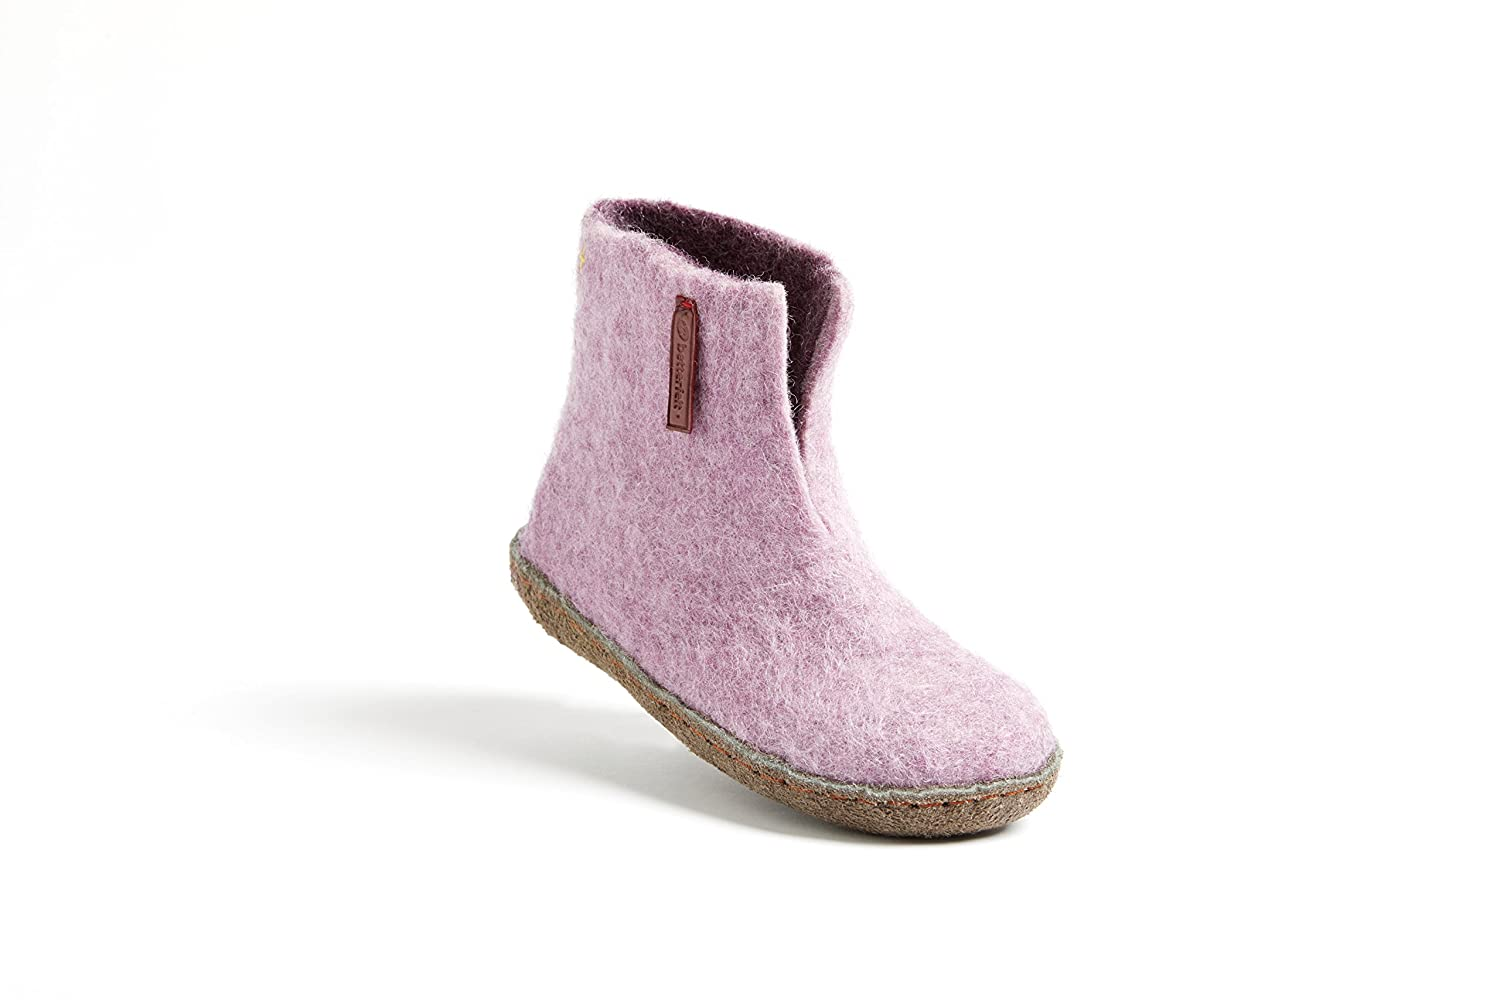 Fairtrade Many Colors Hide Rubber Sole betterfelt Unisex Felted Wool Slippers for Kids Classic Boot